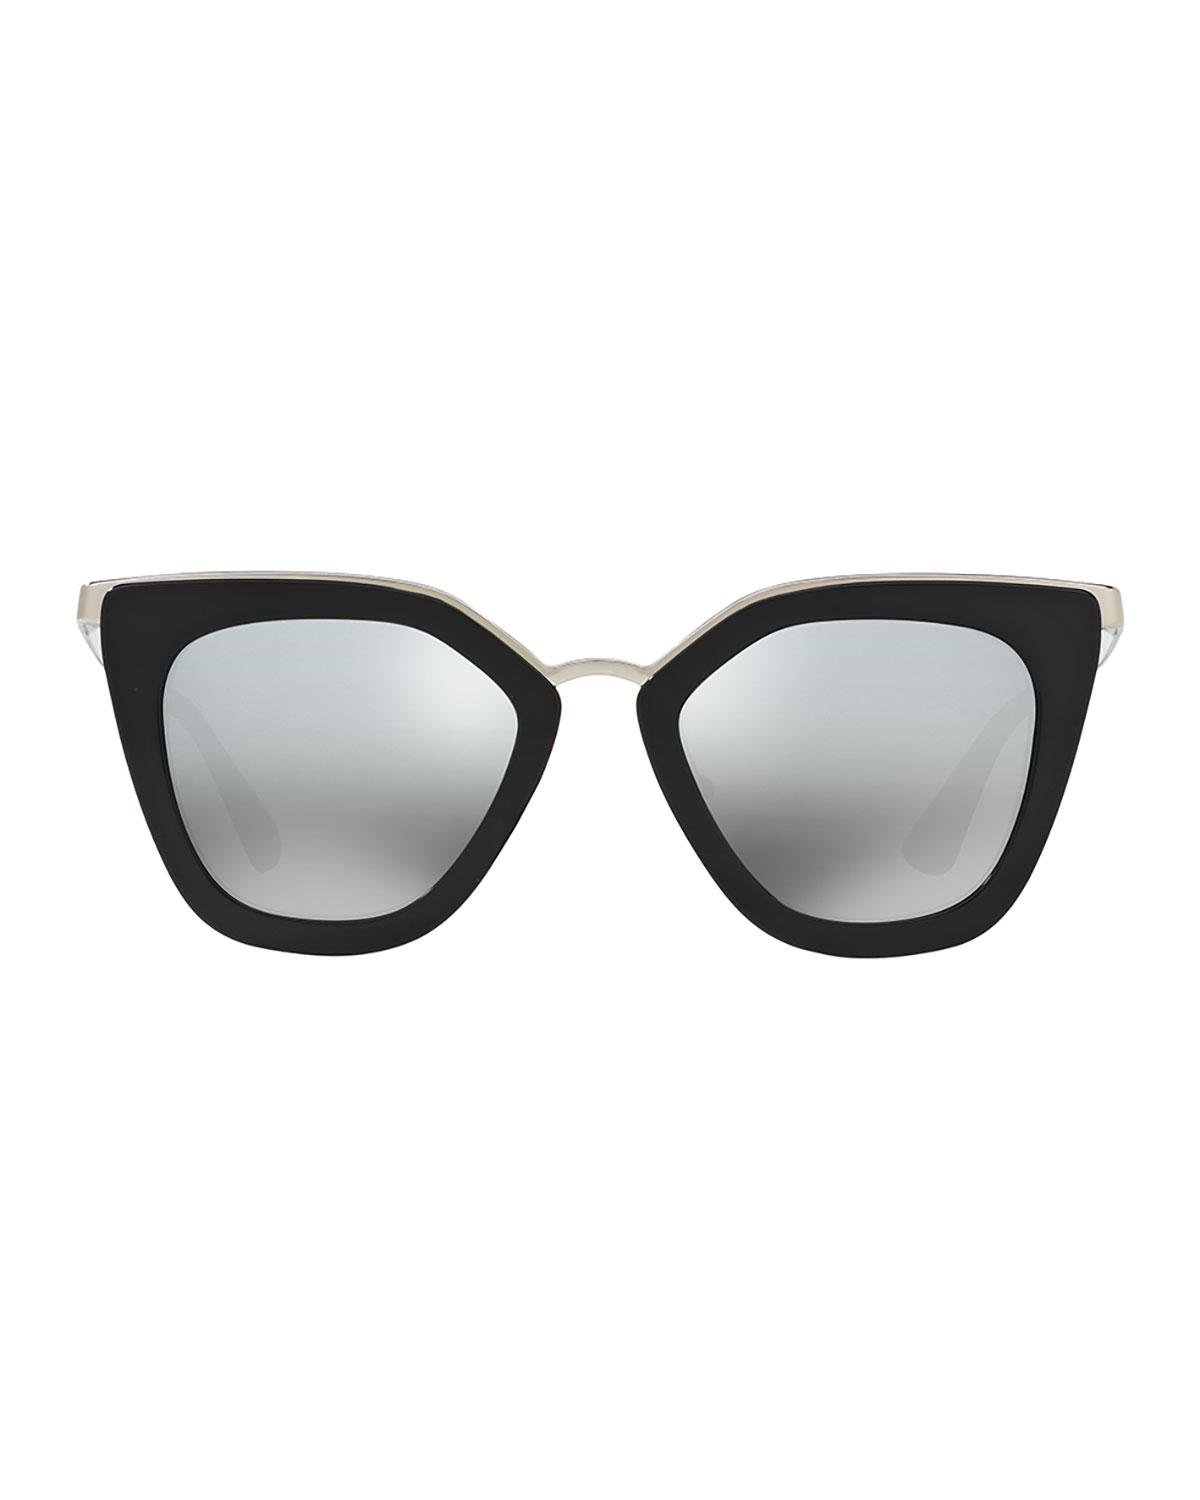 0518ba0f353f ... cheapest lyst prada mirrored square cat eye sunglasses in black 47920  52ddc